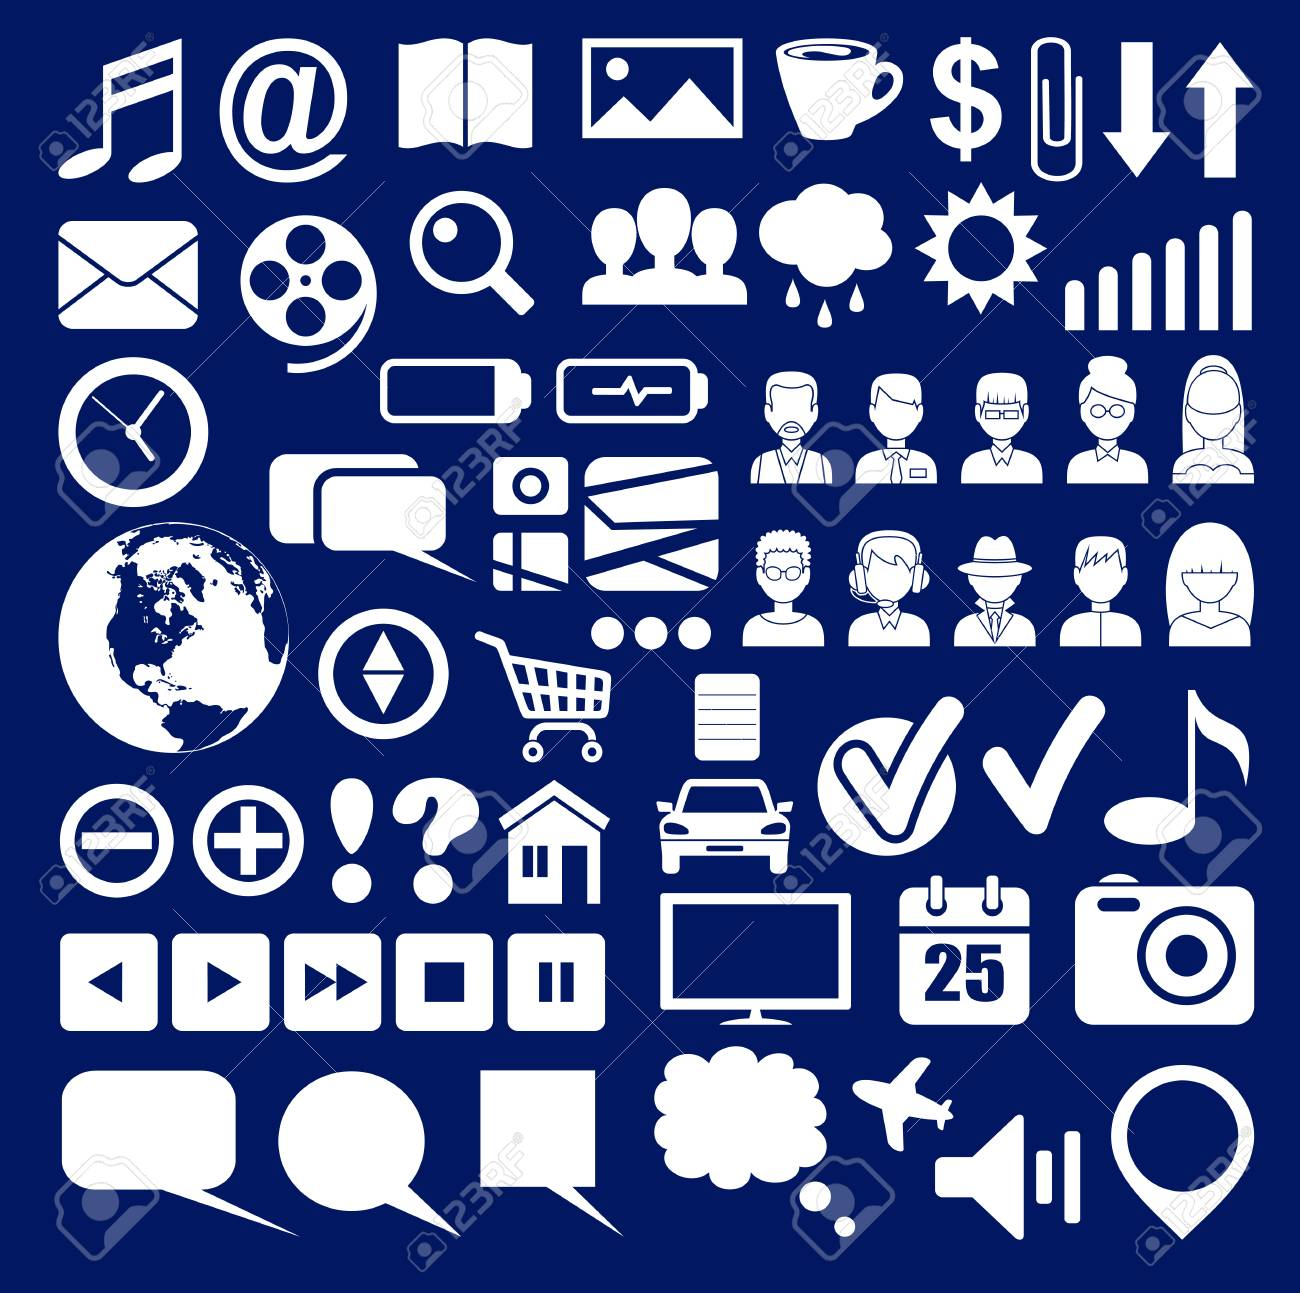 icons of a social networt royalty free cliparts vectors and stock